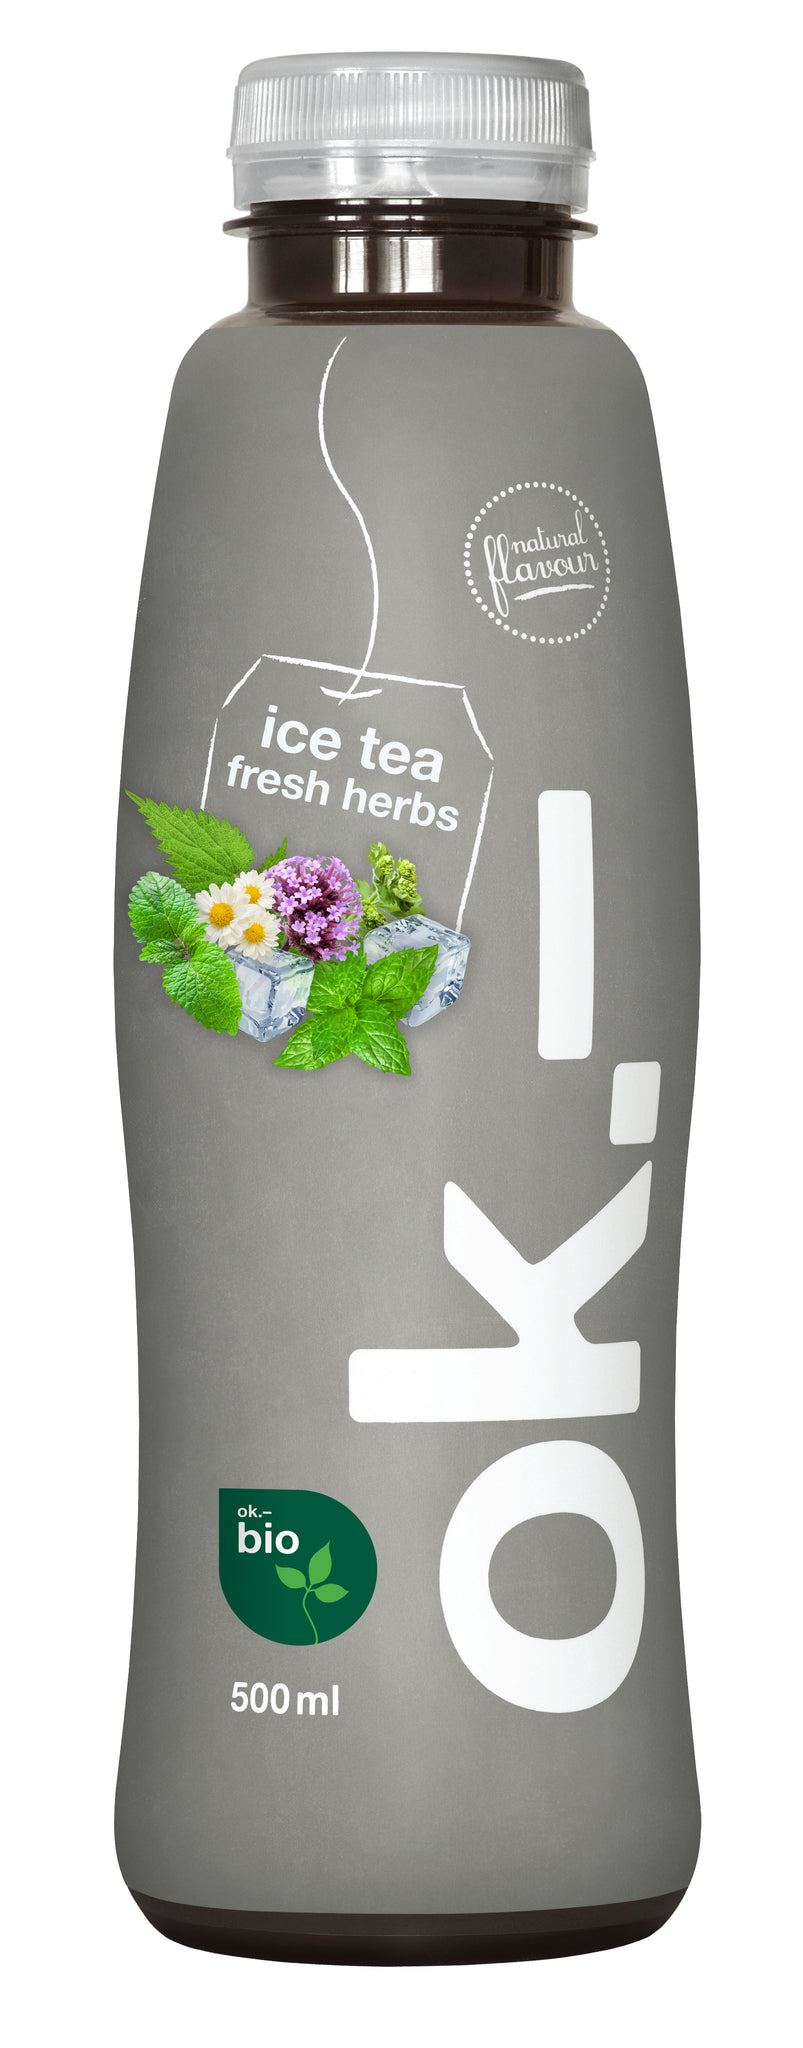 ok.– ice tea bio fresh herbs